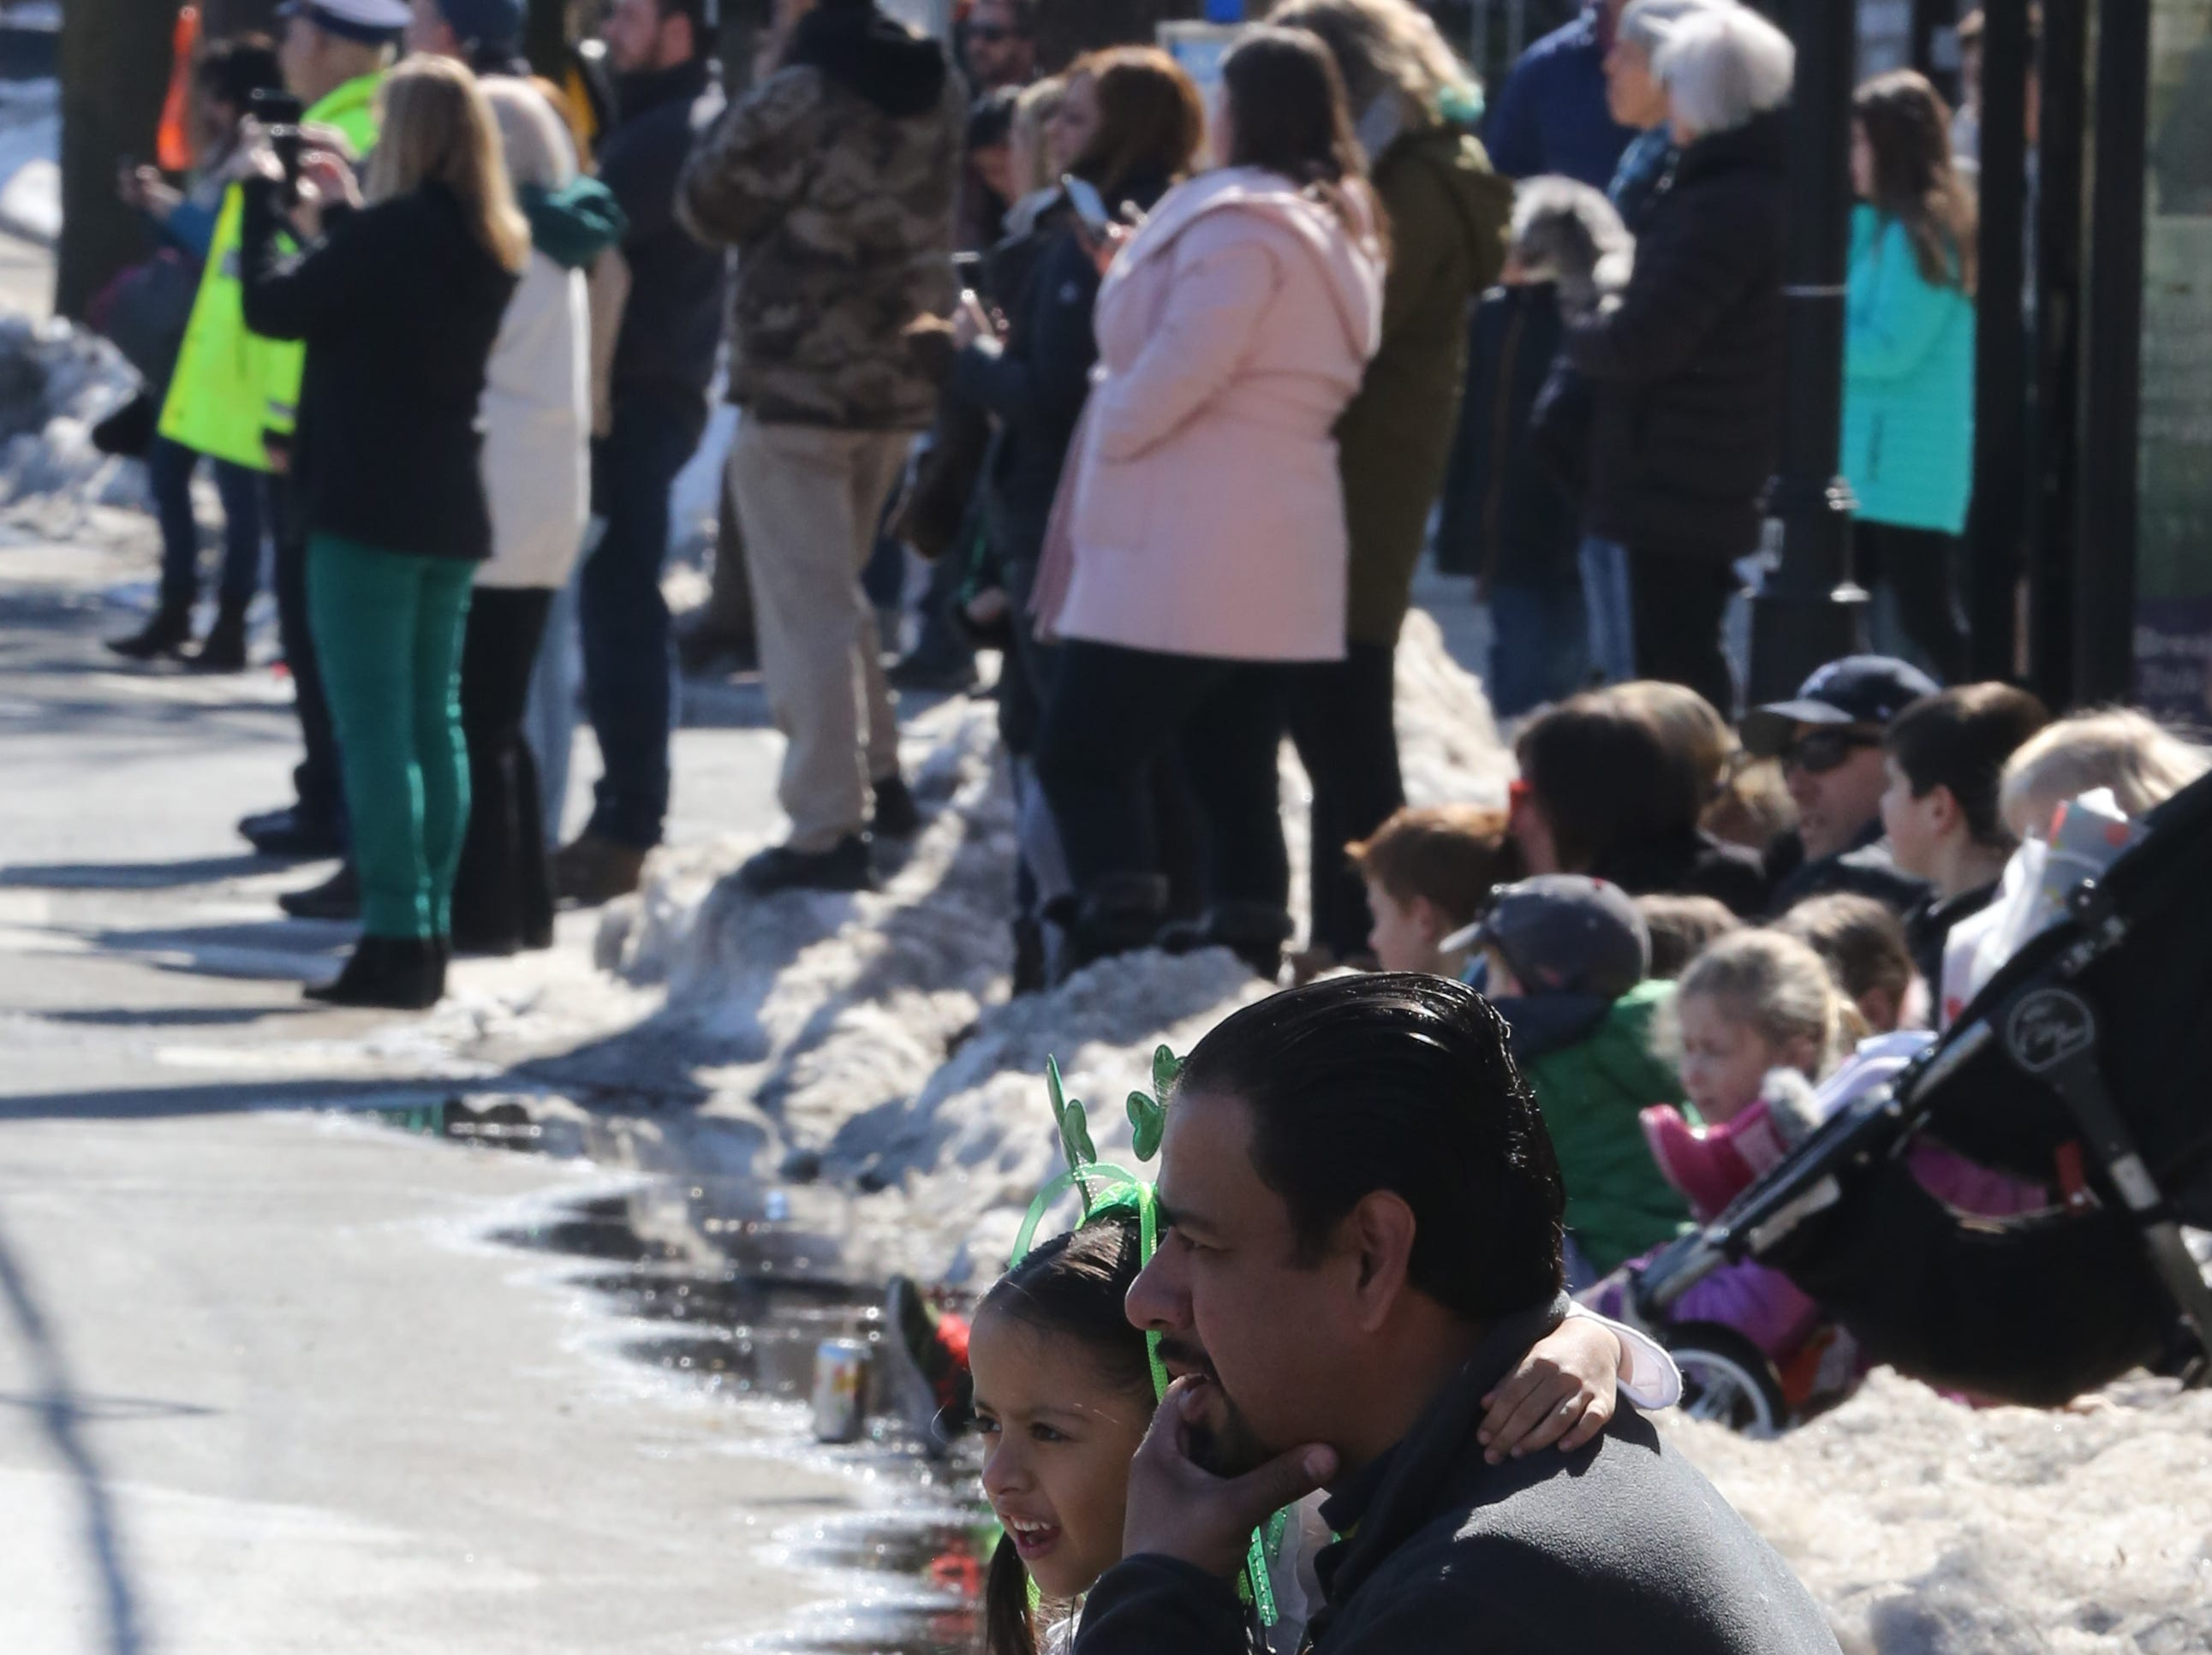 Juan Carlos Heredia and his daughter, Carolyn Heredia, 5 watch the bands during the 22nd annual White Plains St. Patrick's Day parade along Mamaroneck Avenue in White Plains March 9, 2019.